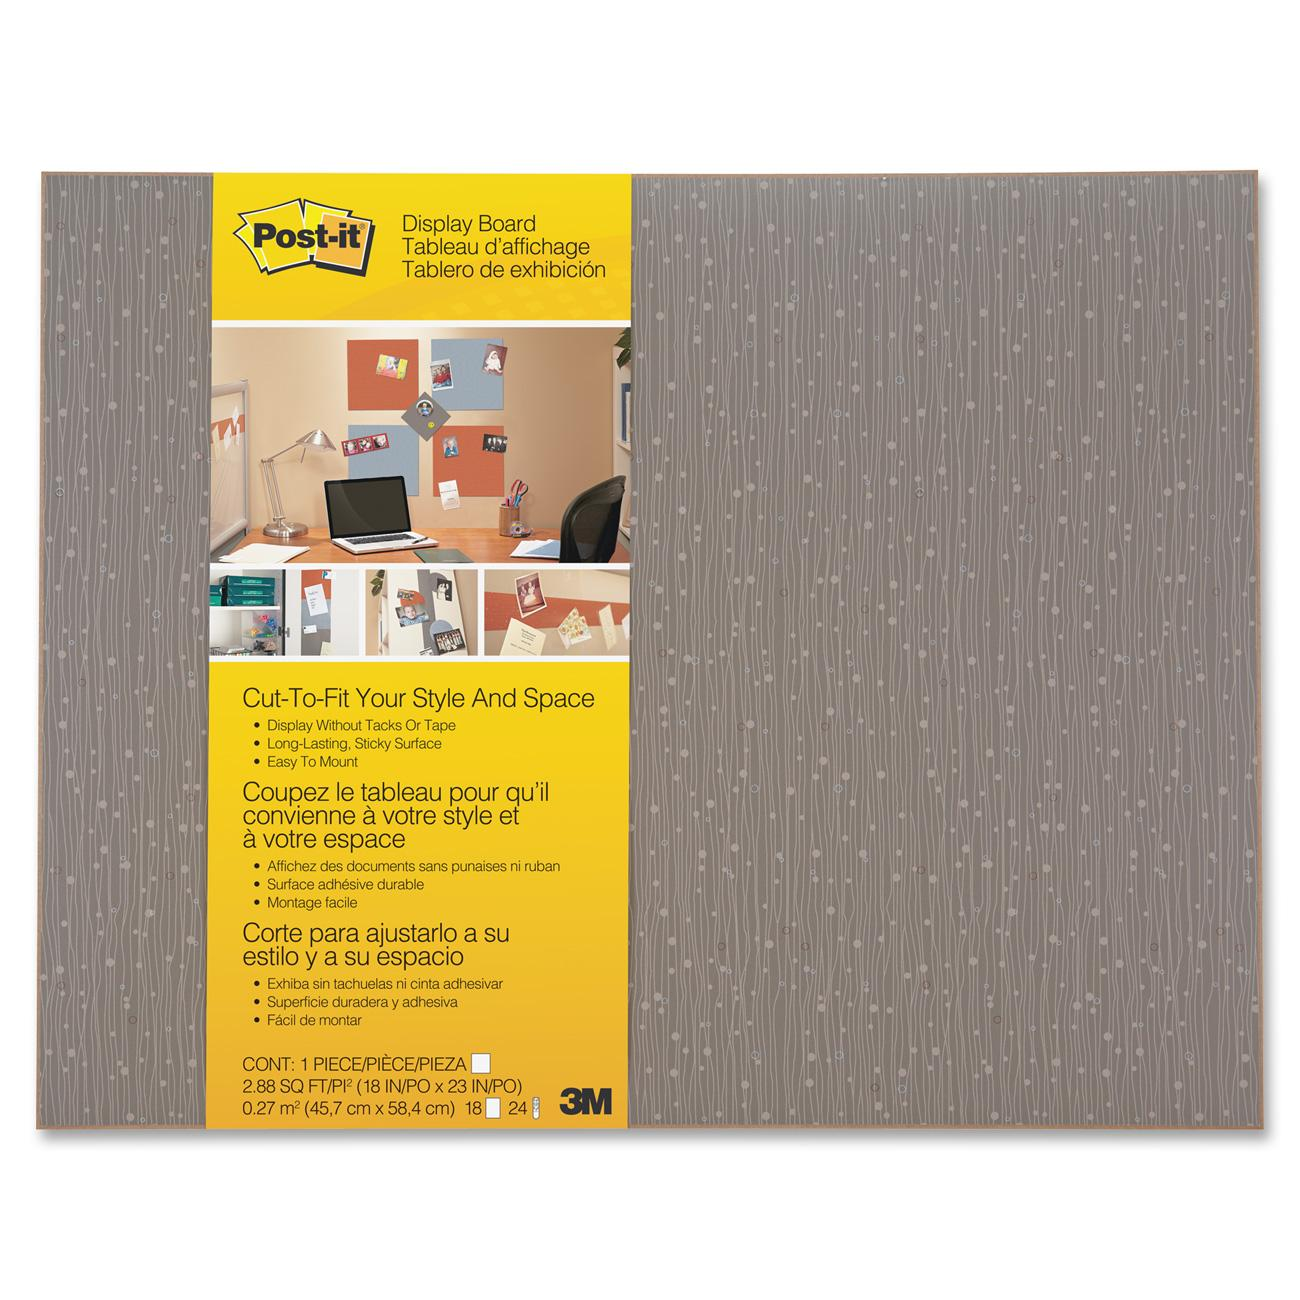 "Post-it Cut-to-Fit Display Boards, 24"" x 18"", Mocha, Command Strips Included"